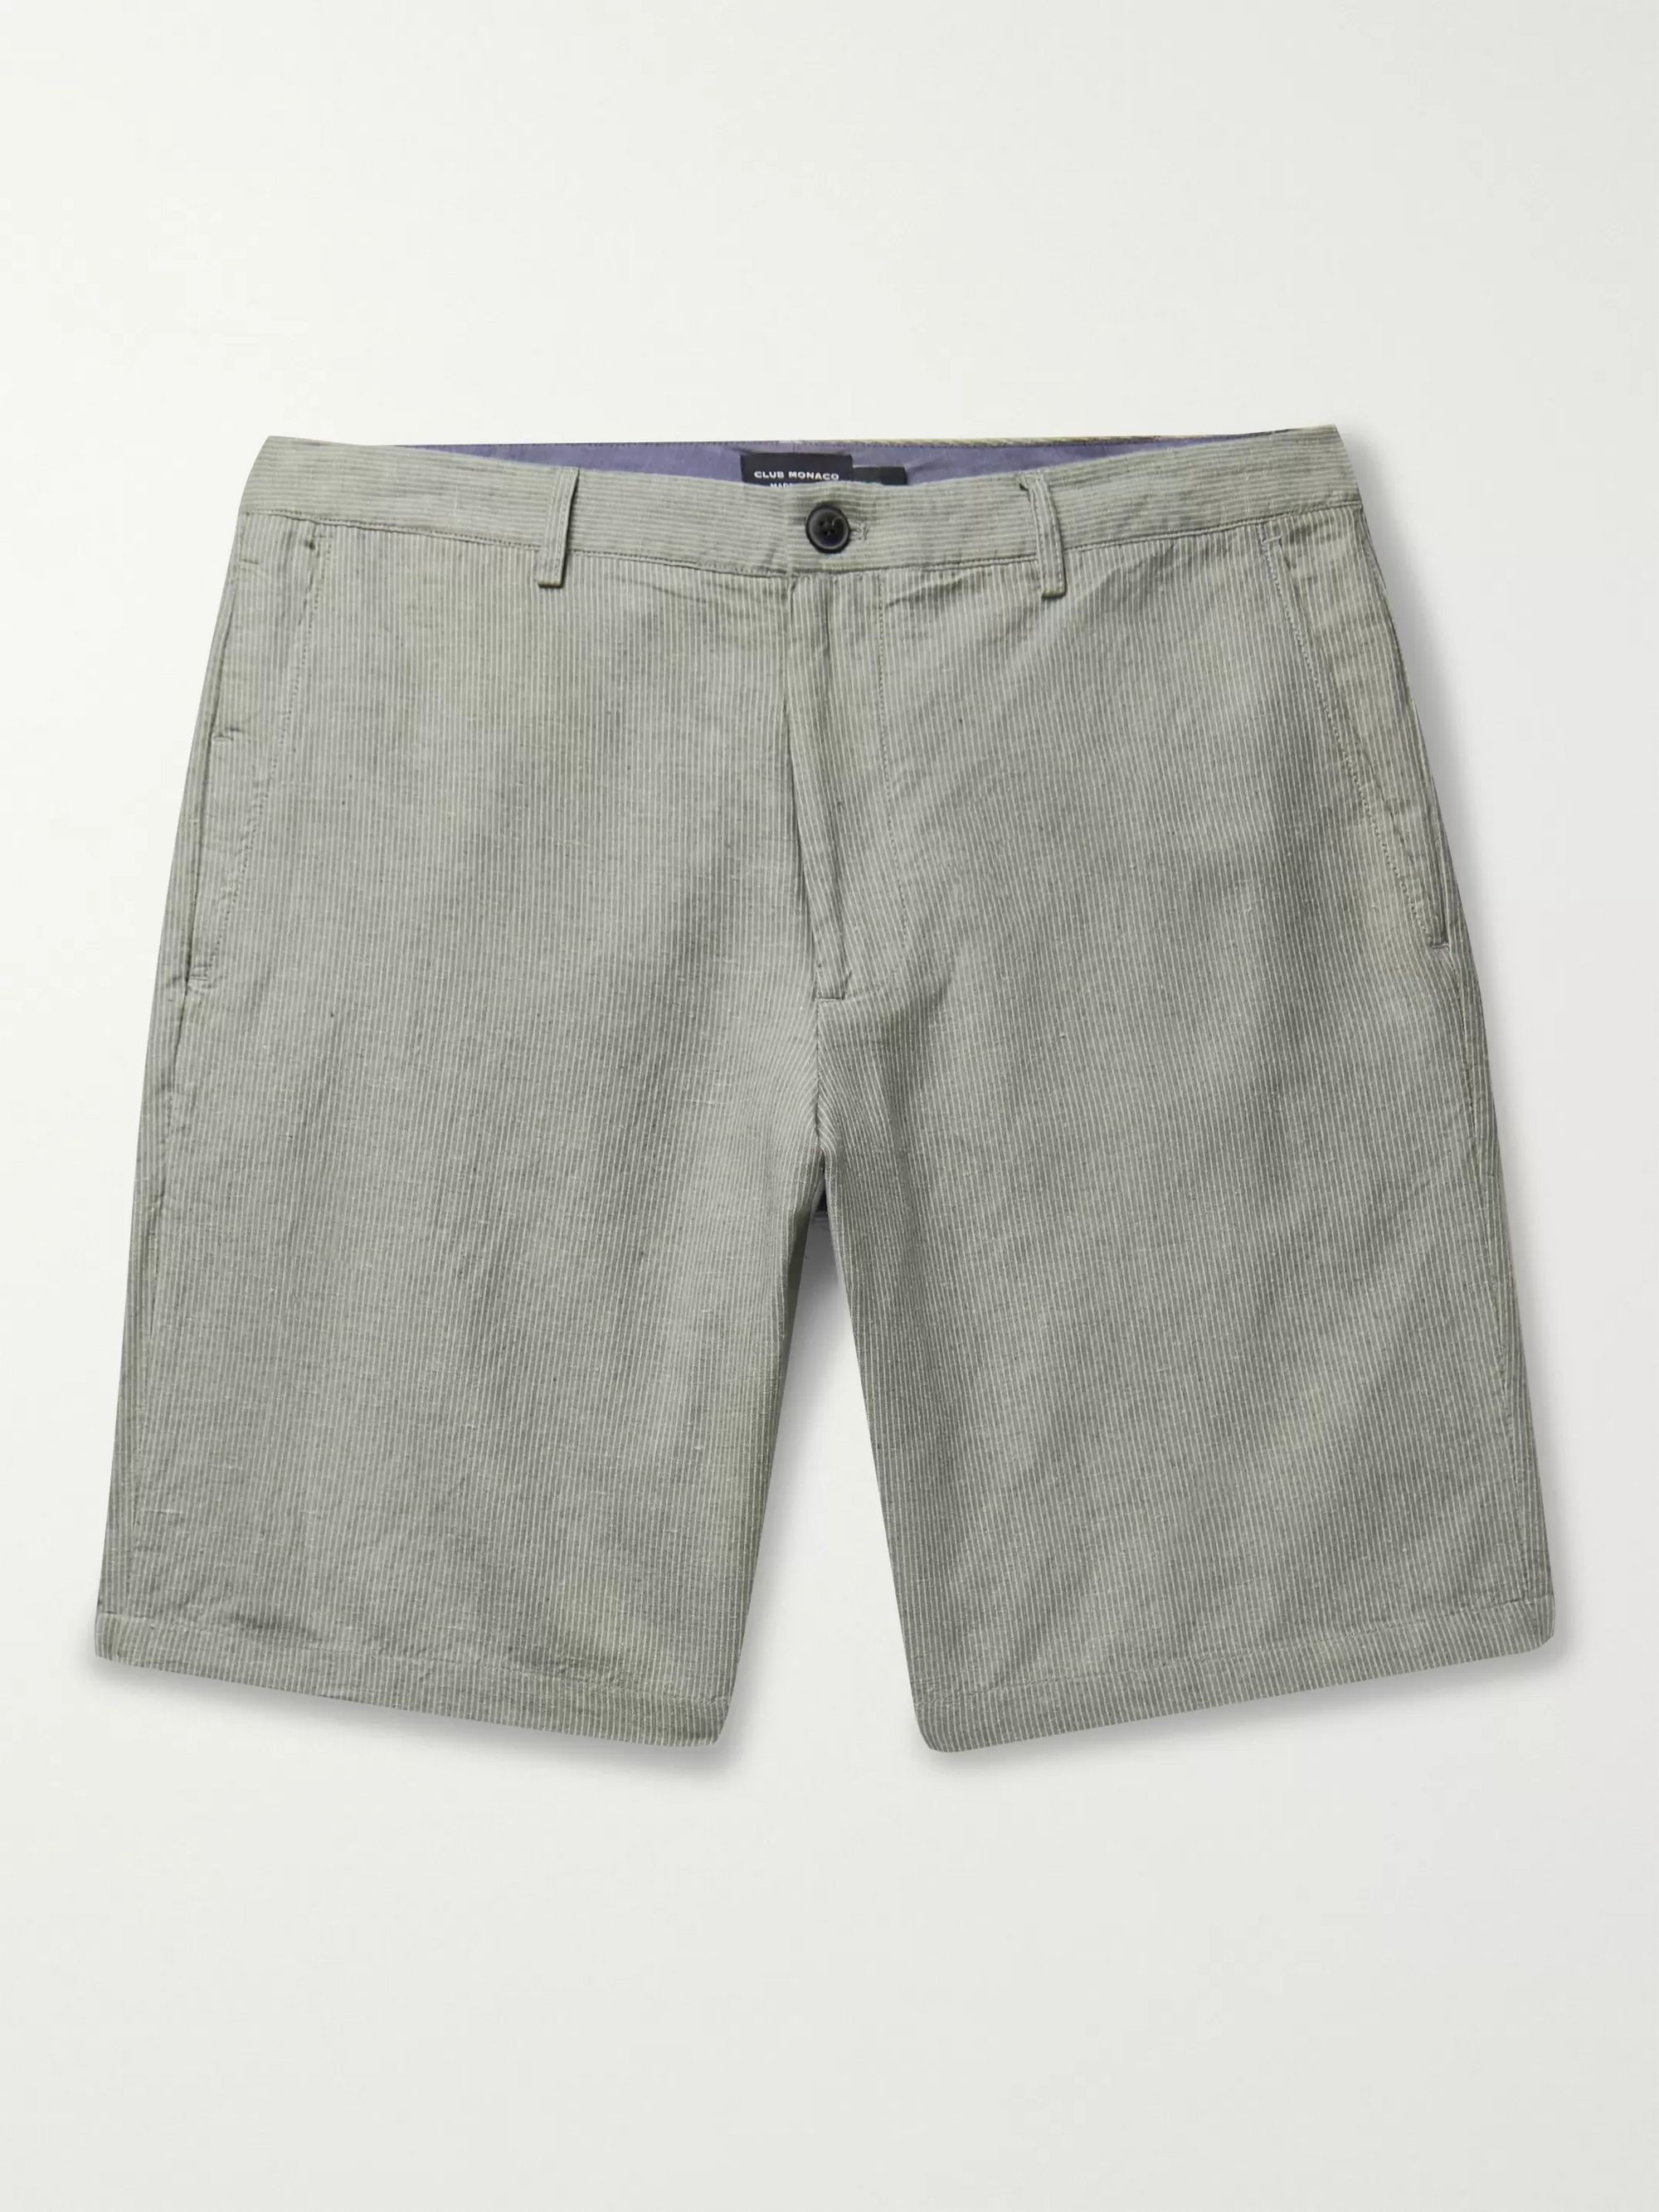 Club Monaco Maddox Pinstriped Linen and Cotton-Blend Shorts